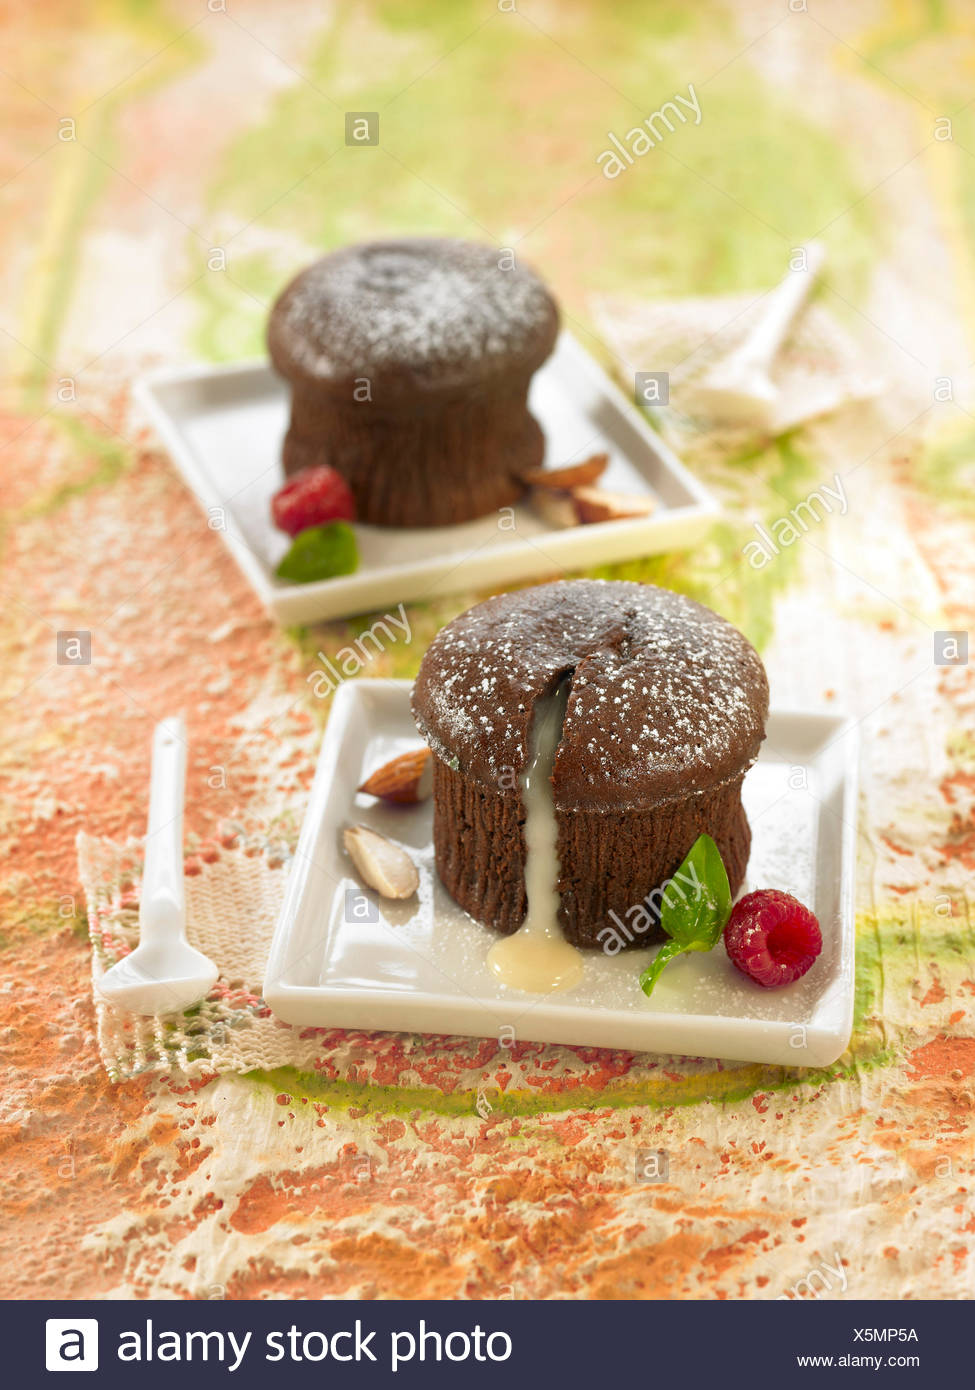 Dark chocolate fondant with a runny white chocolate filling - Stock Image